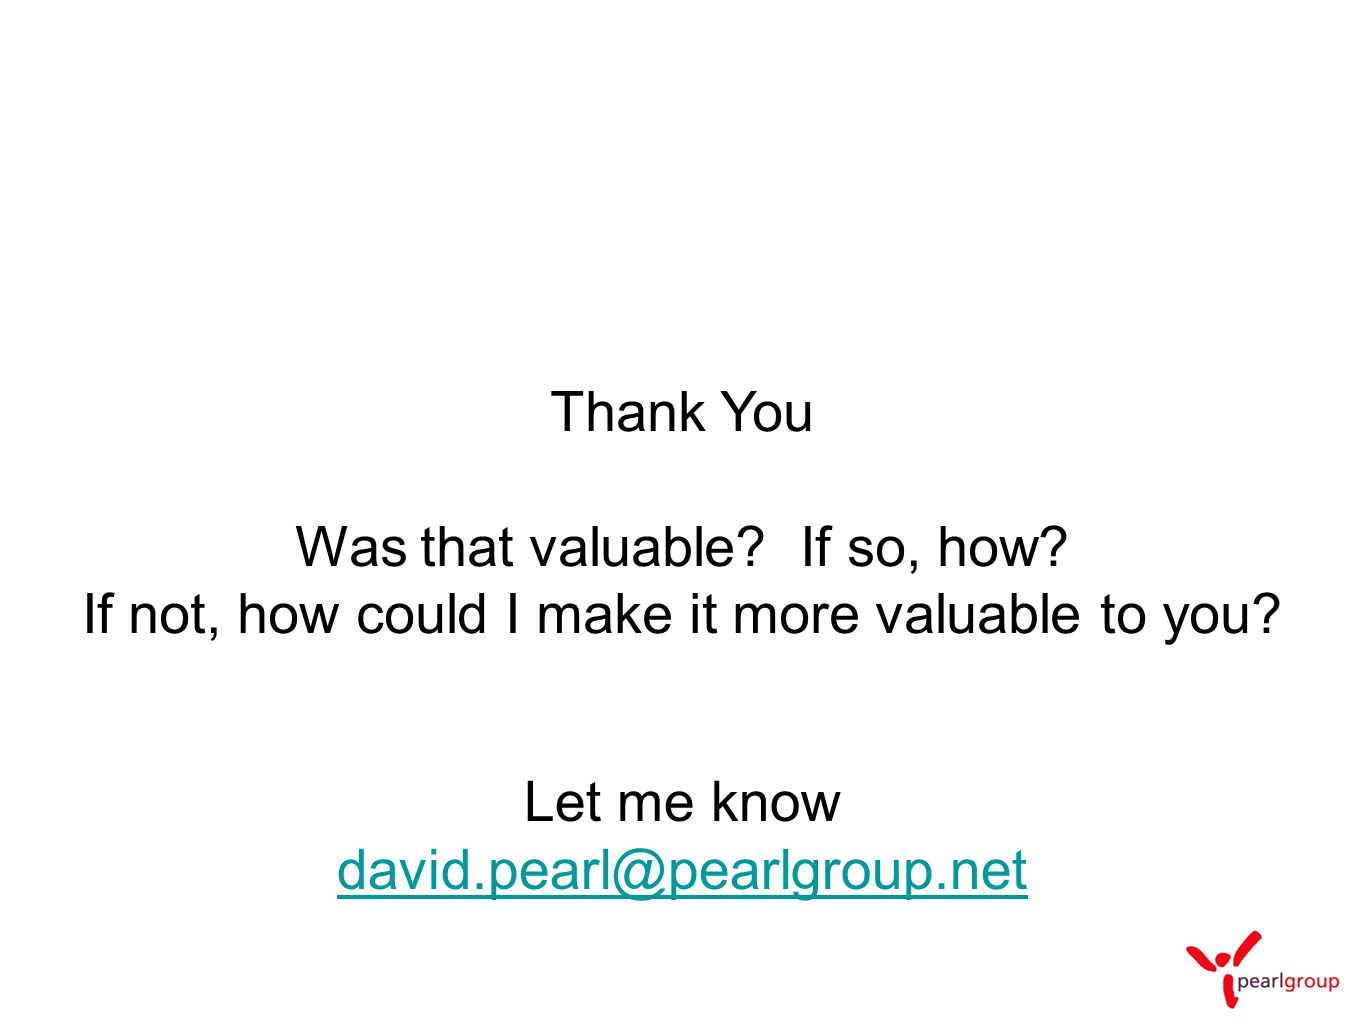 Thank You Was that valuable? If so, how? If not, how could I make it more valuable to you? Let me know david.pearl@pearlgroup.net